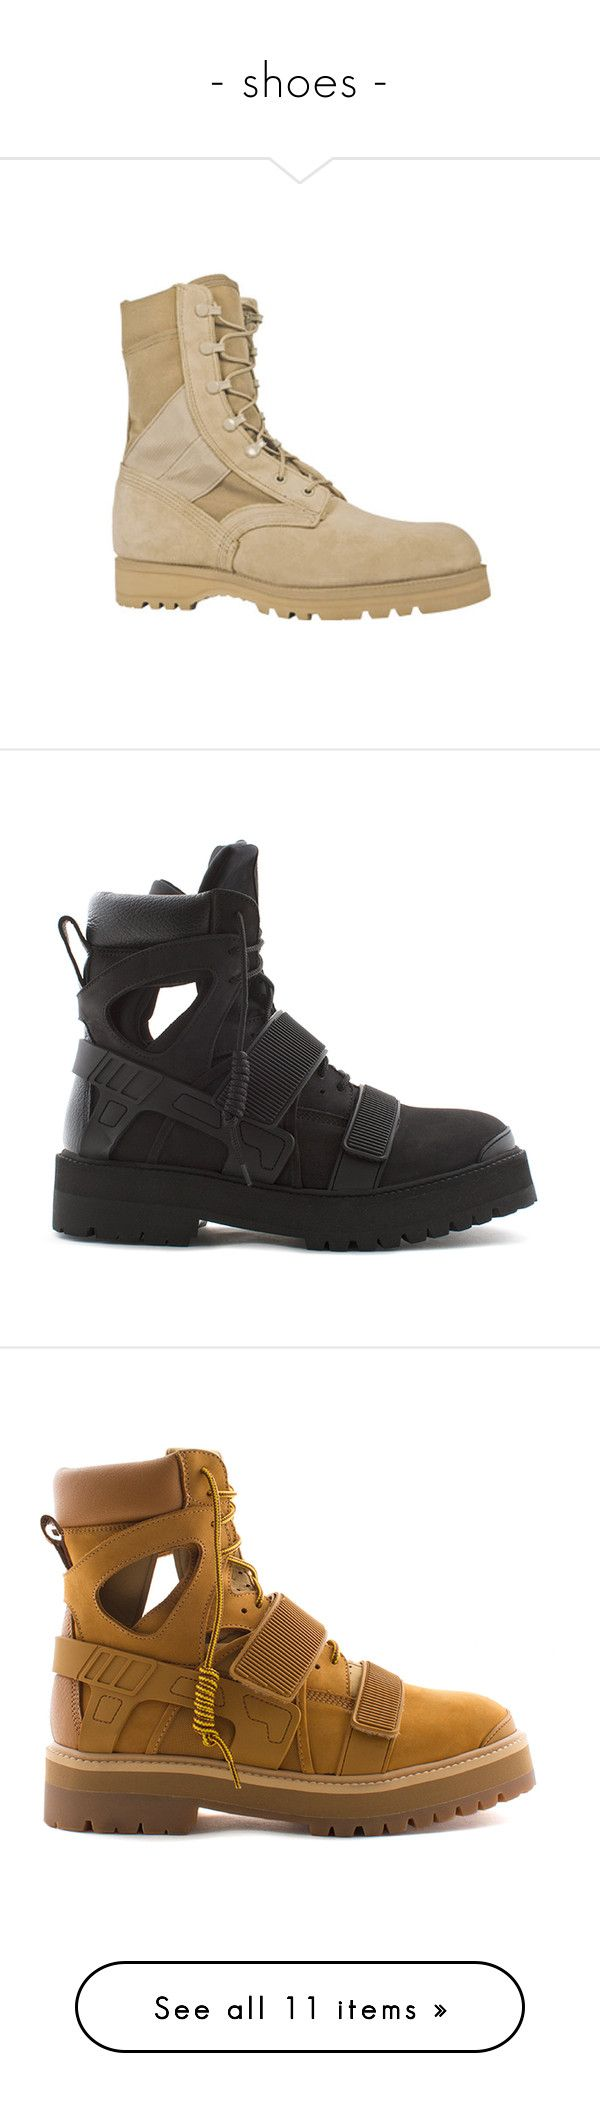 """""""- shoes -"""" by uniq-official ❤ liked on Polyvore featuring men's fashion, men's shoes, men's boots, tan, mens boots, mens lace up shoes, mens slip resistant shoes, mens tan shoes, mens tan boots and shoes"""